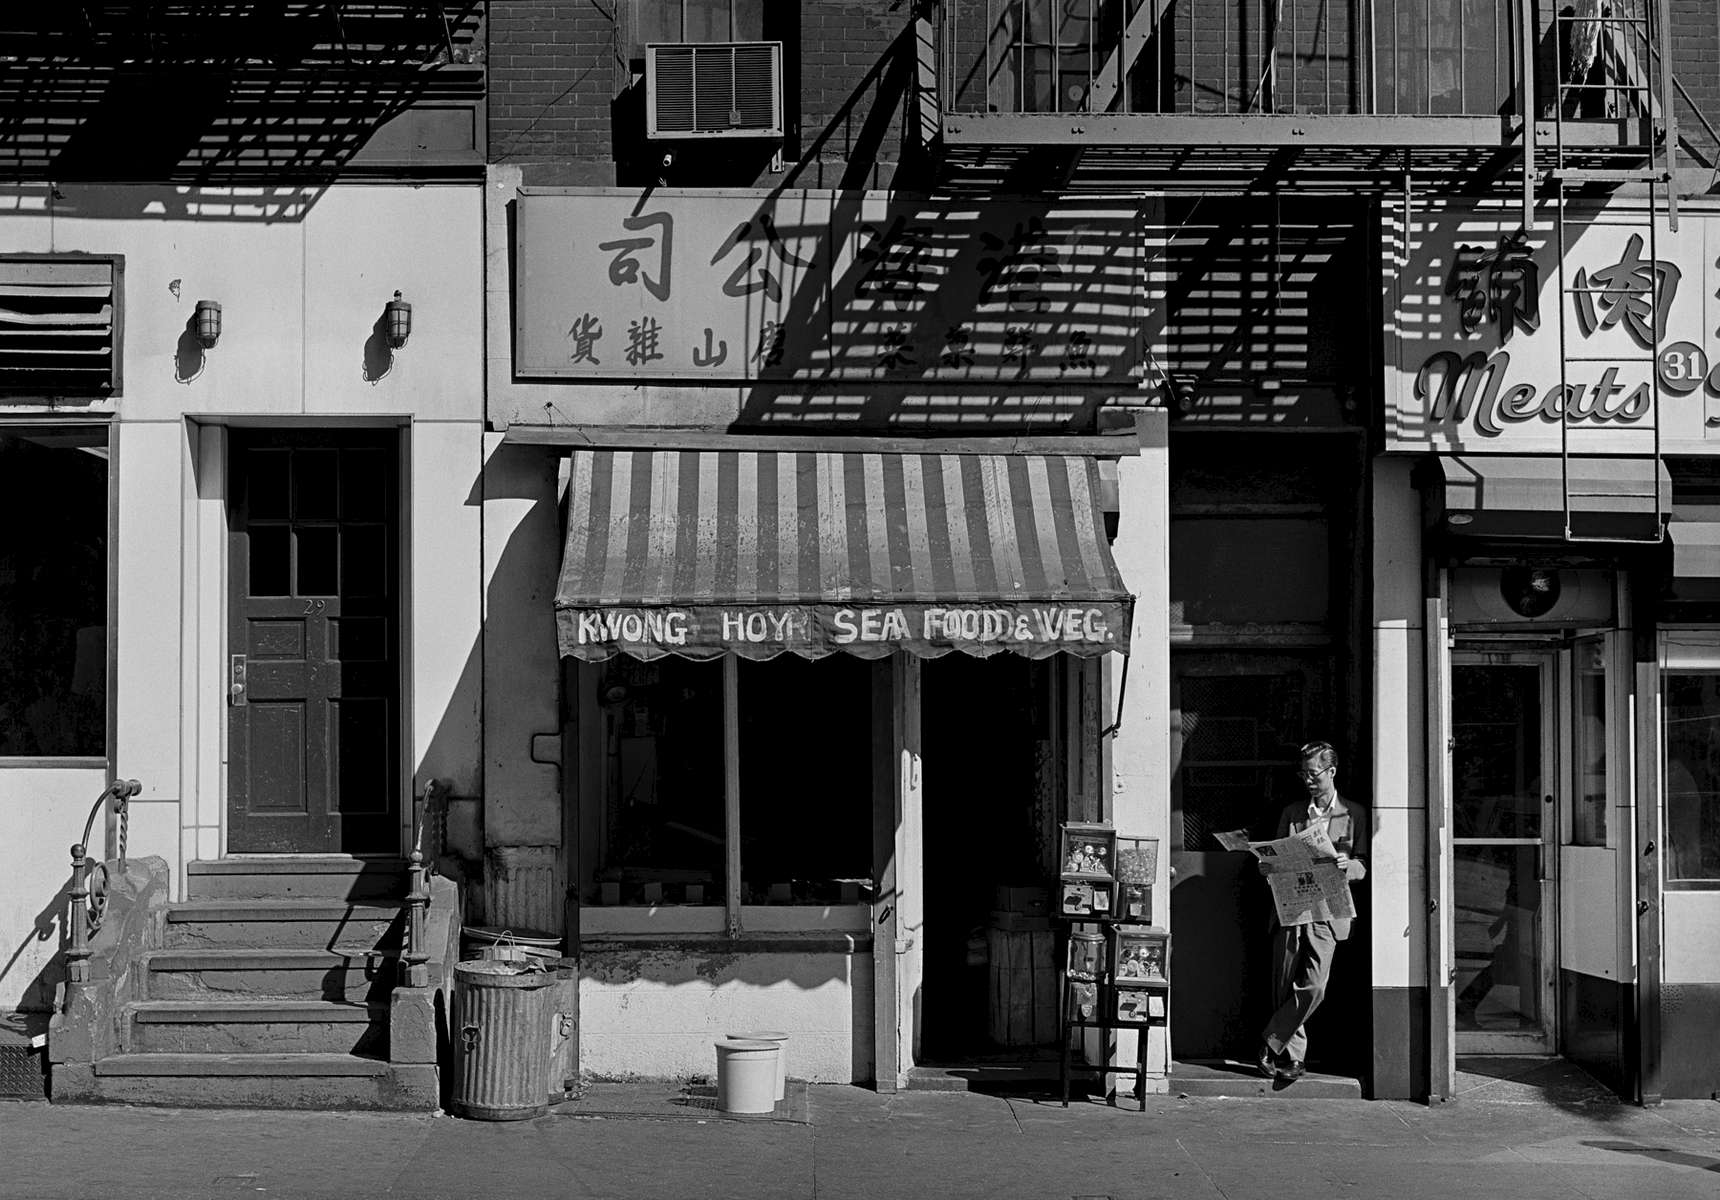 Catherine St., New York Chinatown, 1981